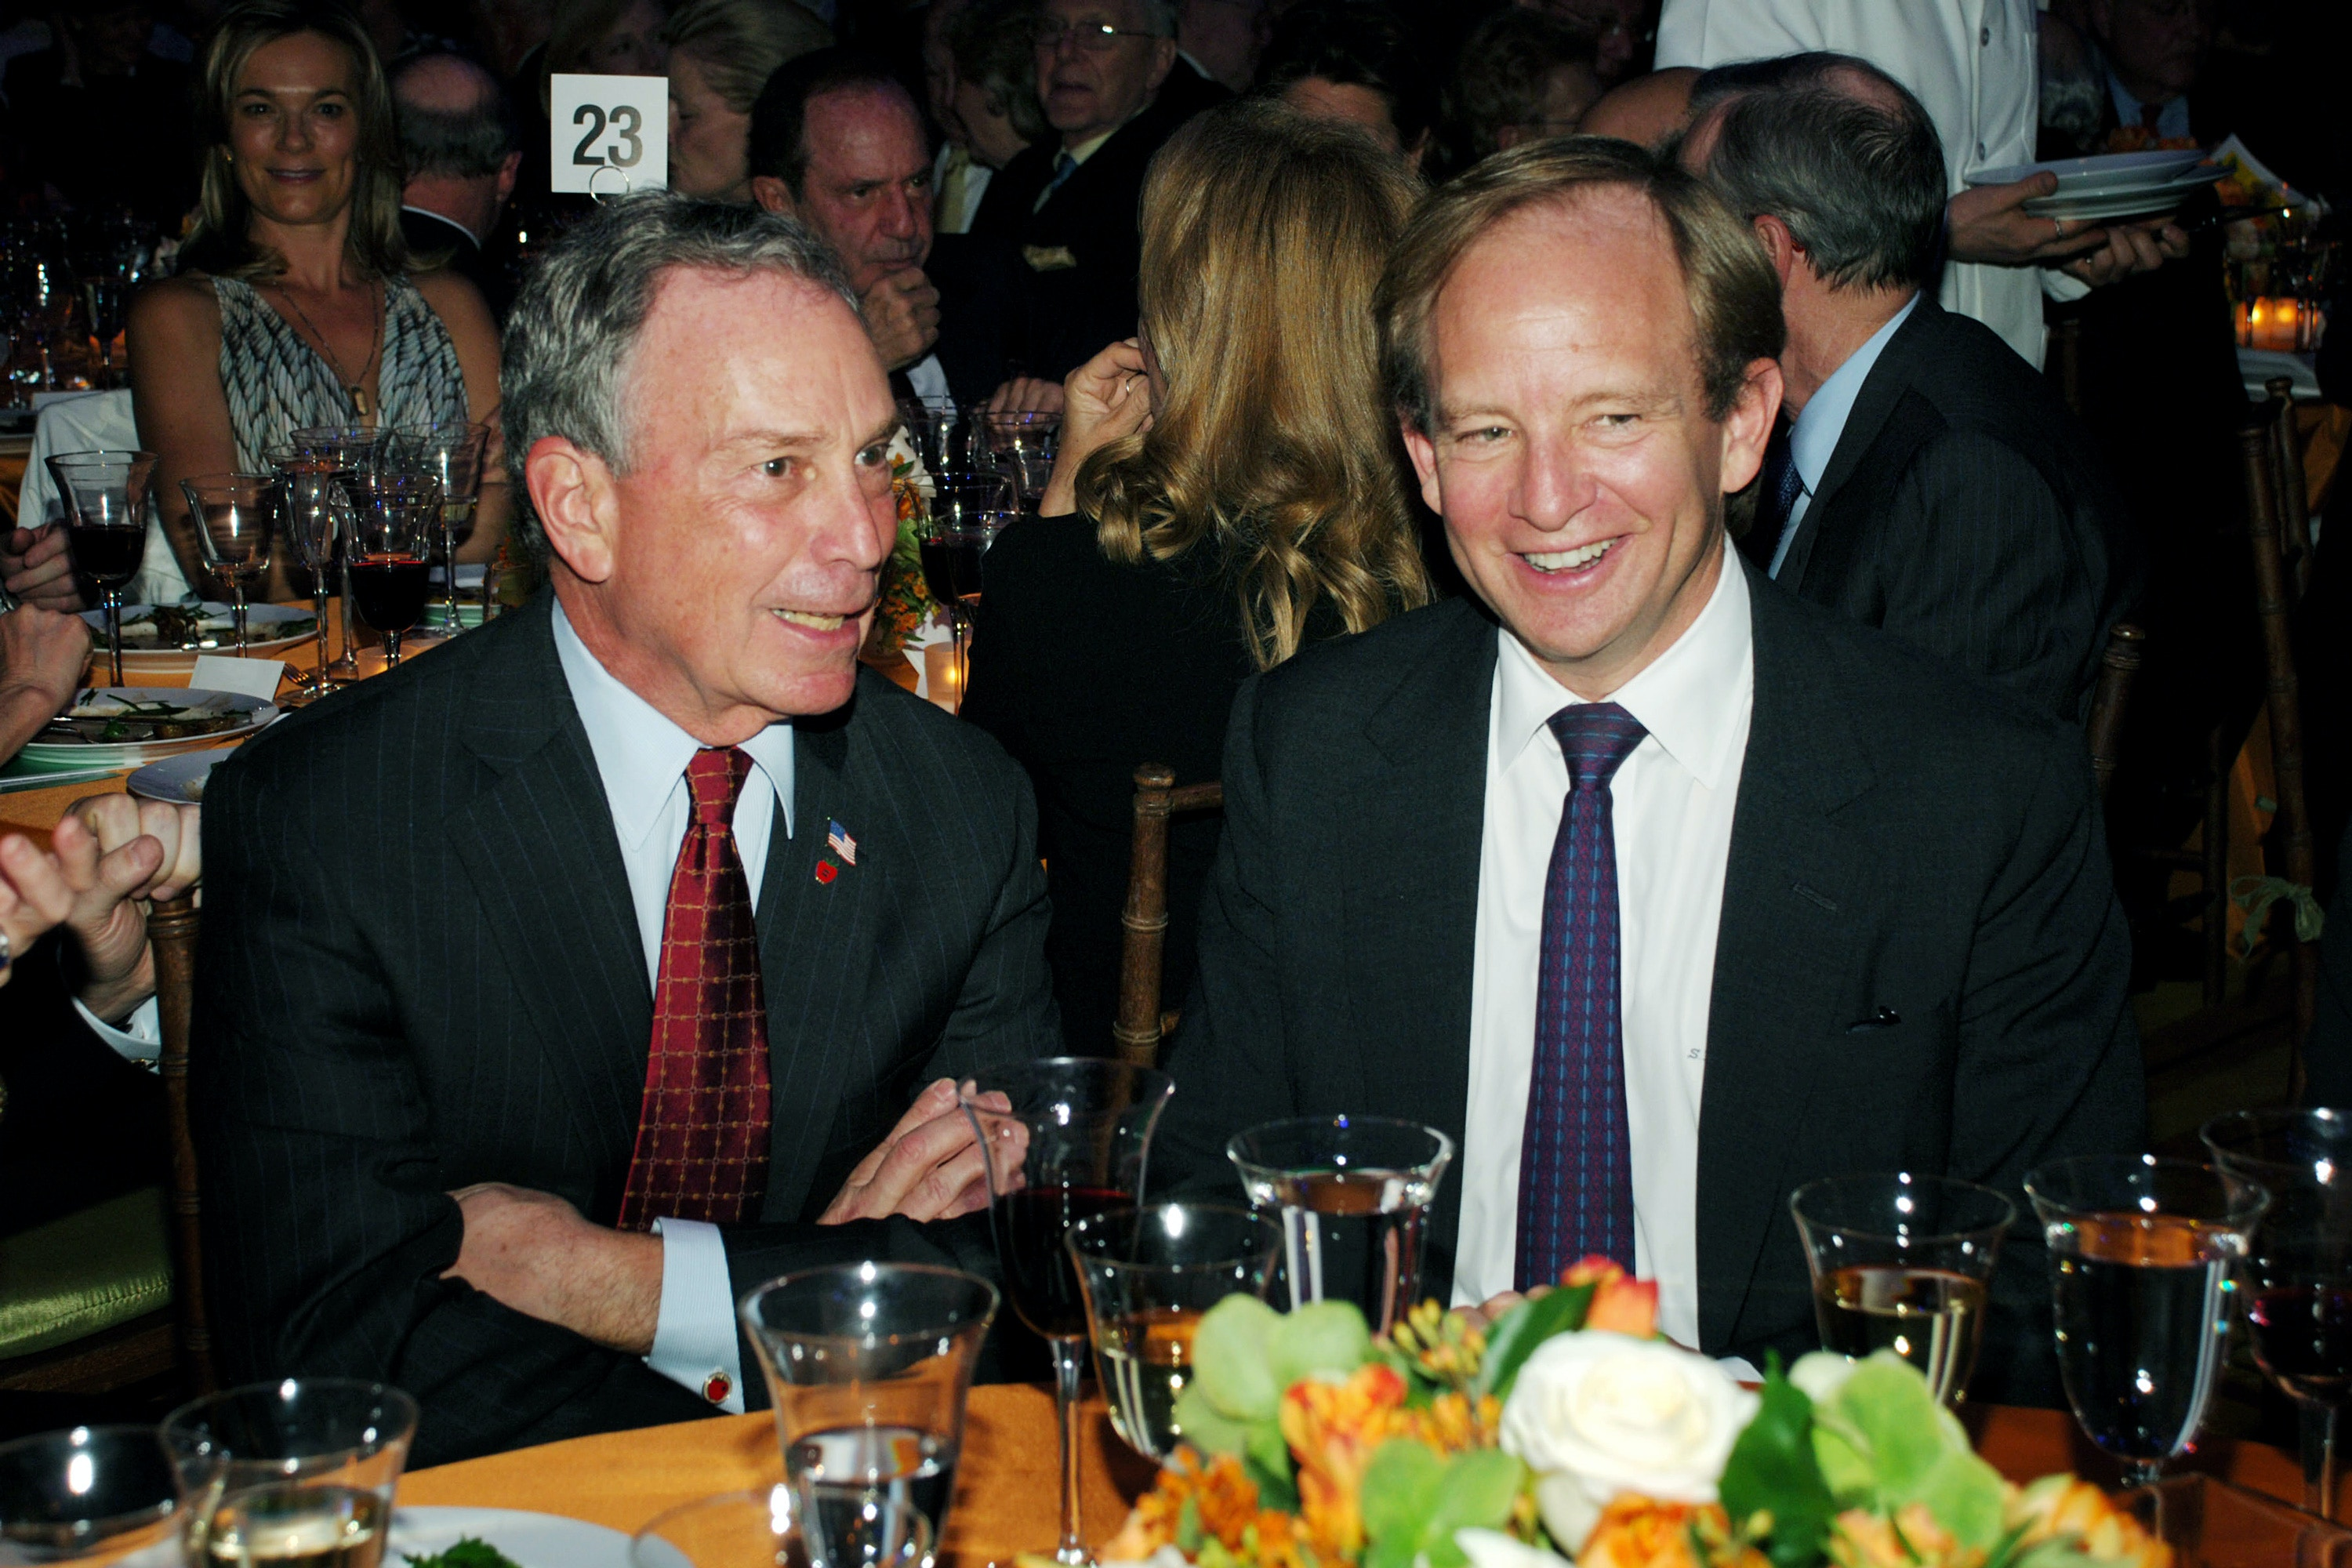 NEW YORK CITY, NY - APRIL 30: Mayor Michael Bloomberg and Steven Rattner attend THIRTEEN and WLIW 21 Annual Gala Salute at Gotham Hall on April 30, 2007 in New York City. (Photo by JOE SCHILDHORN/Patrick McMullan via Getty Images)